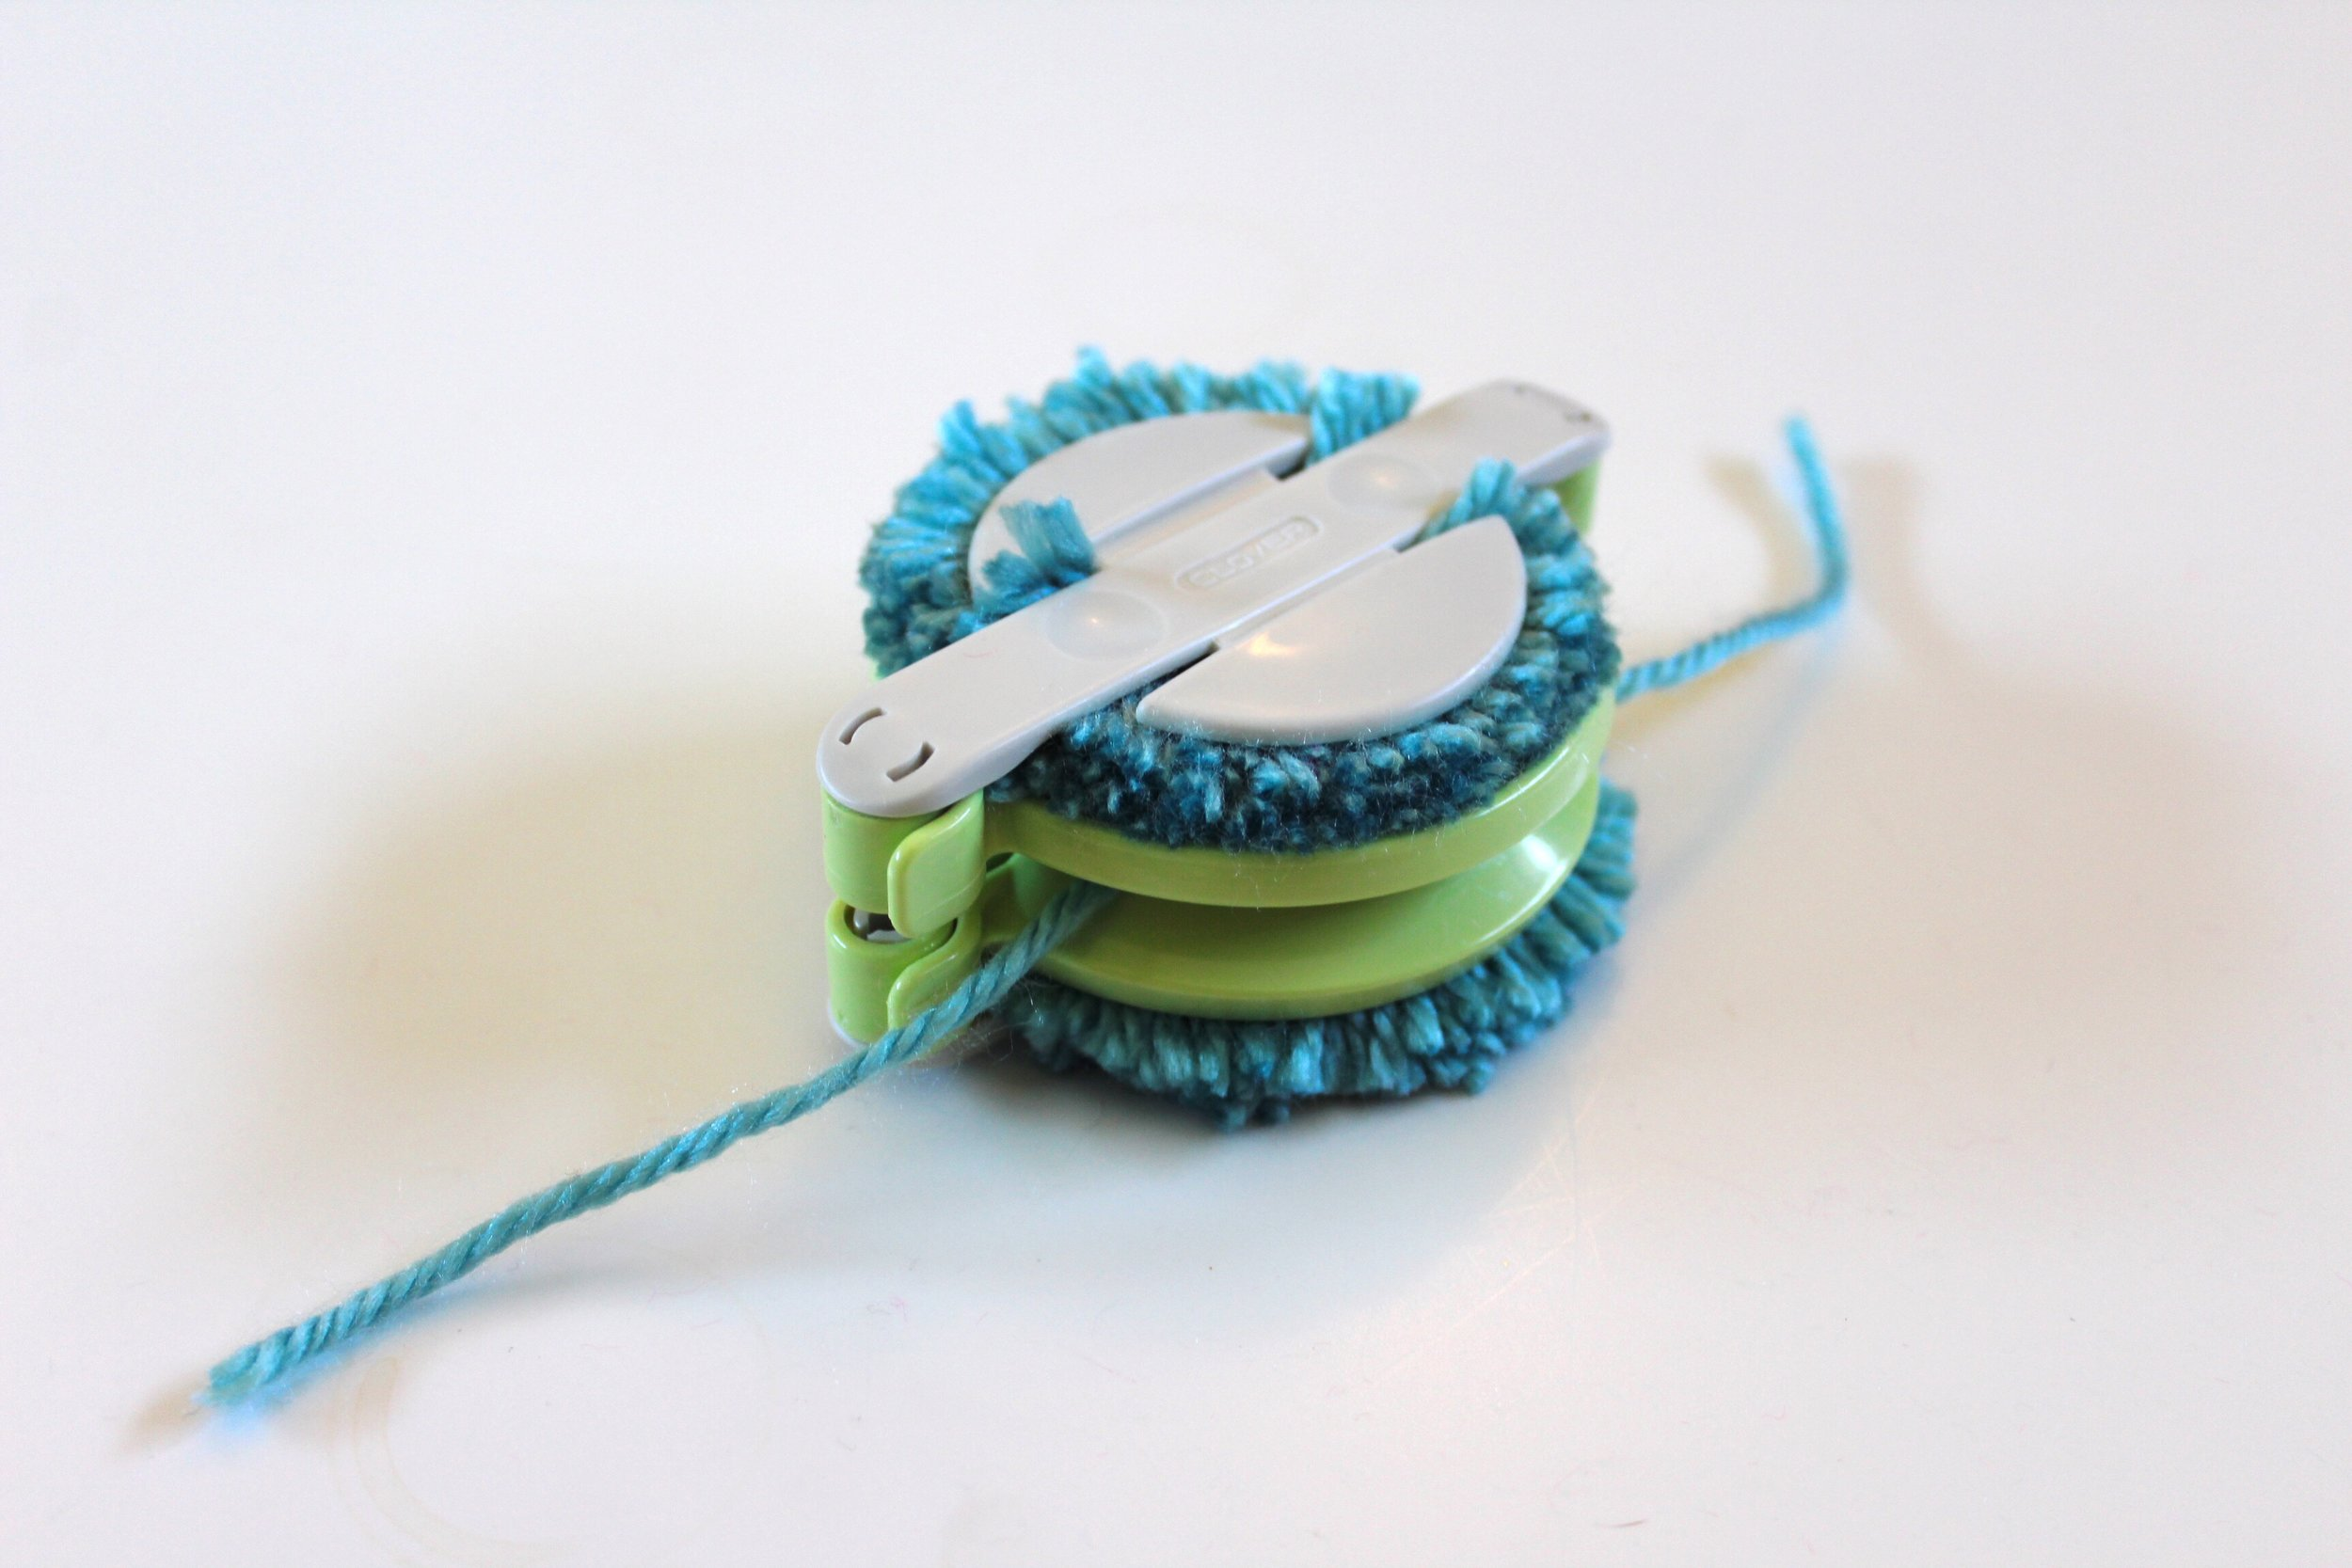 Clover Pom Pom Maker. Yarn has been cut and yarn tied to keep the pom pom together.